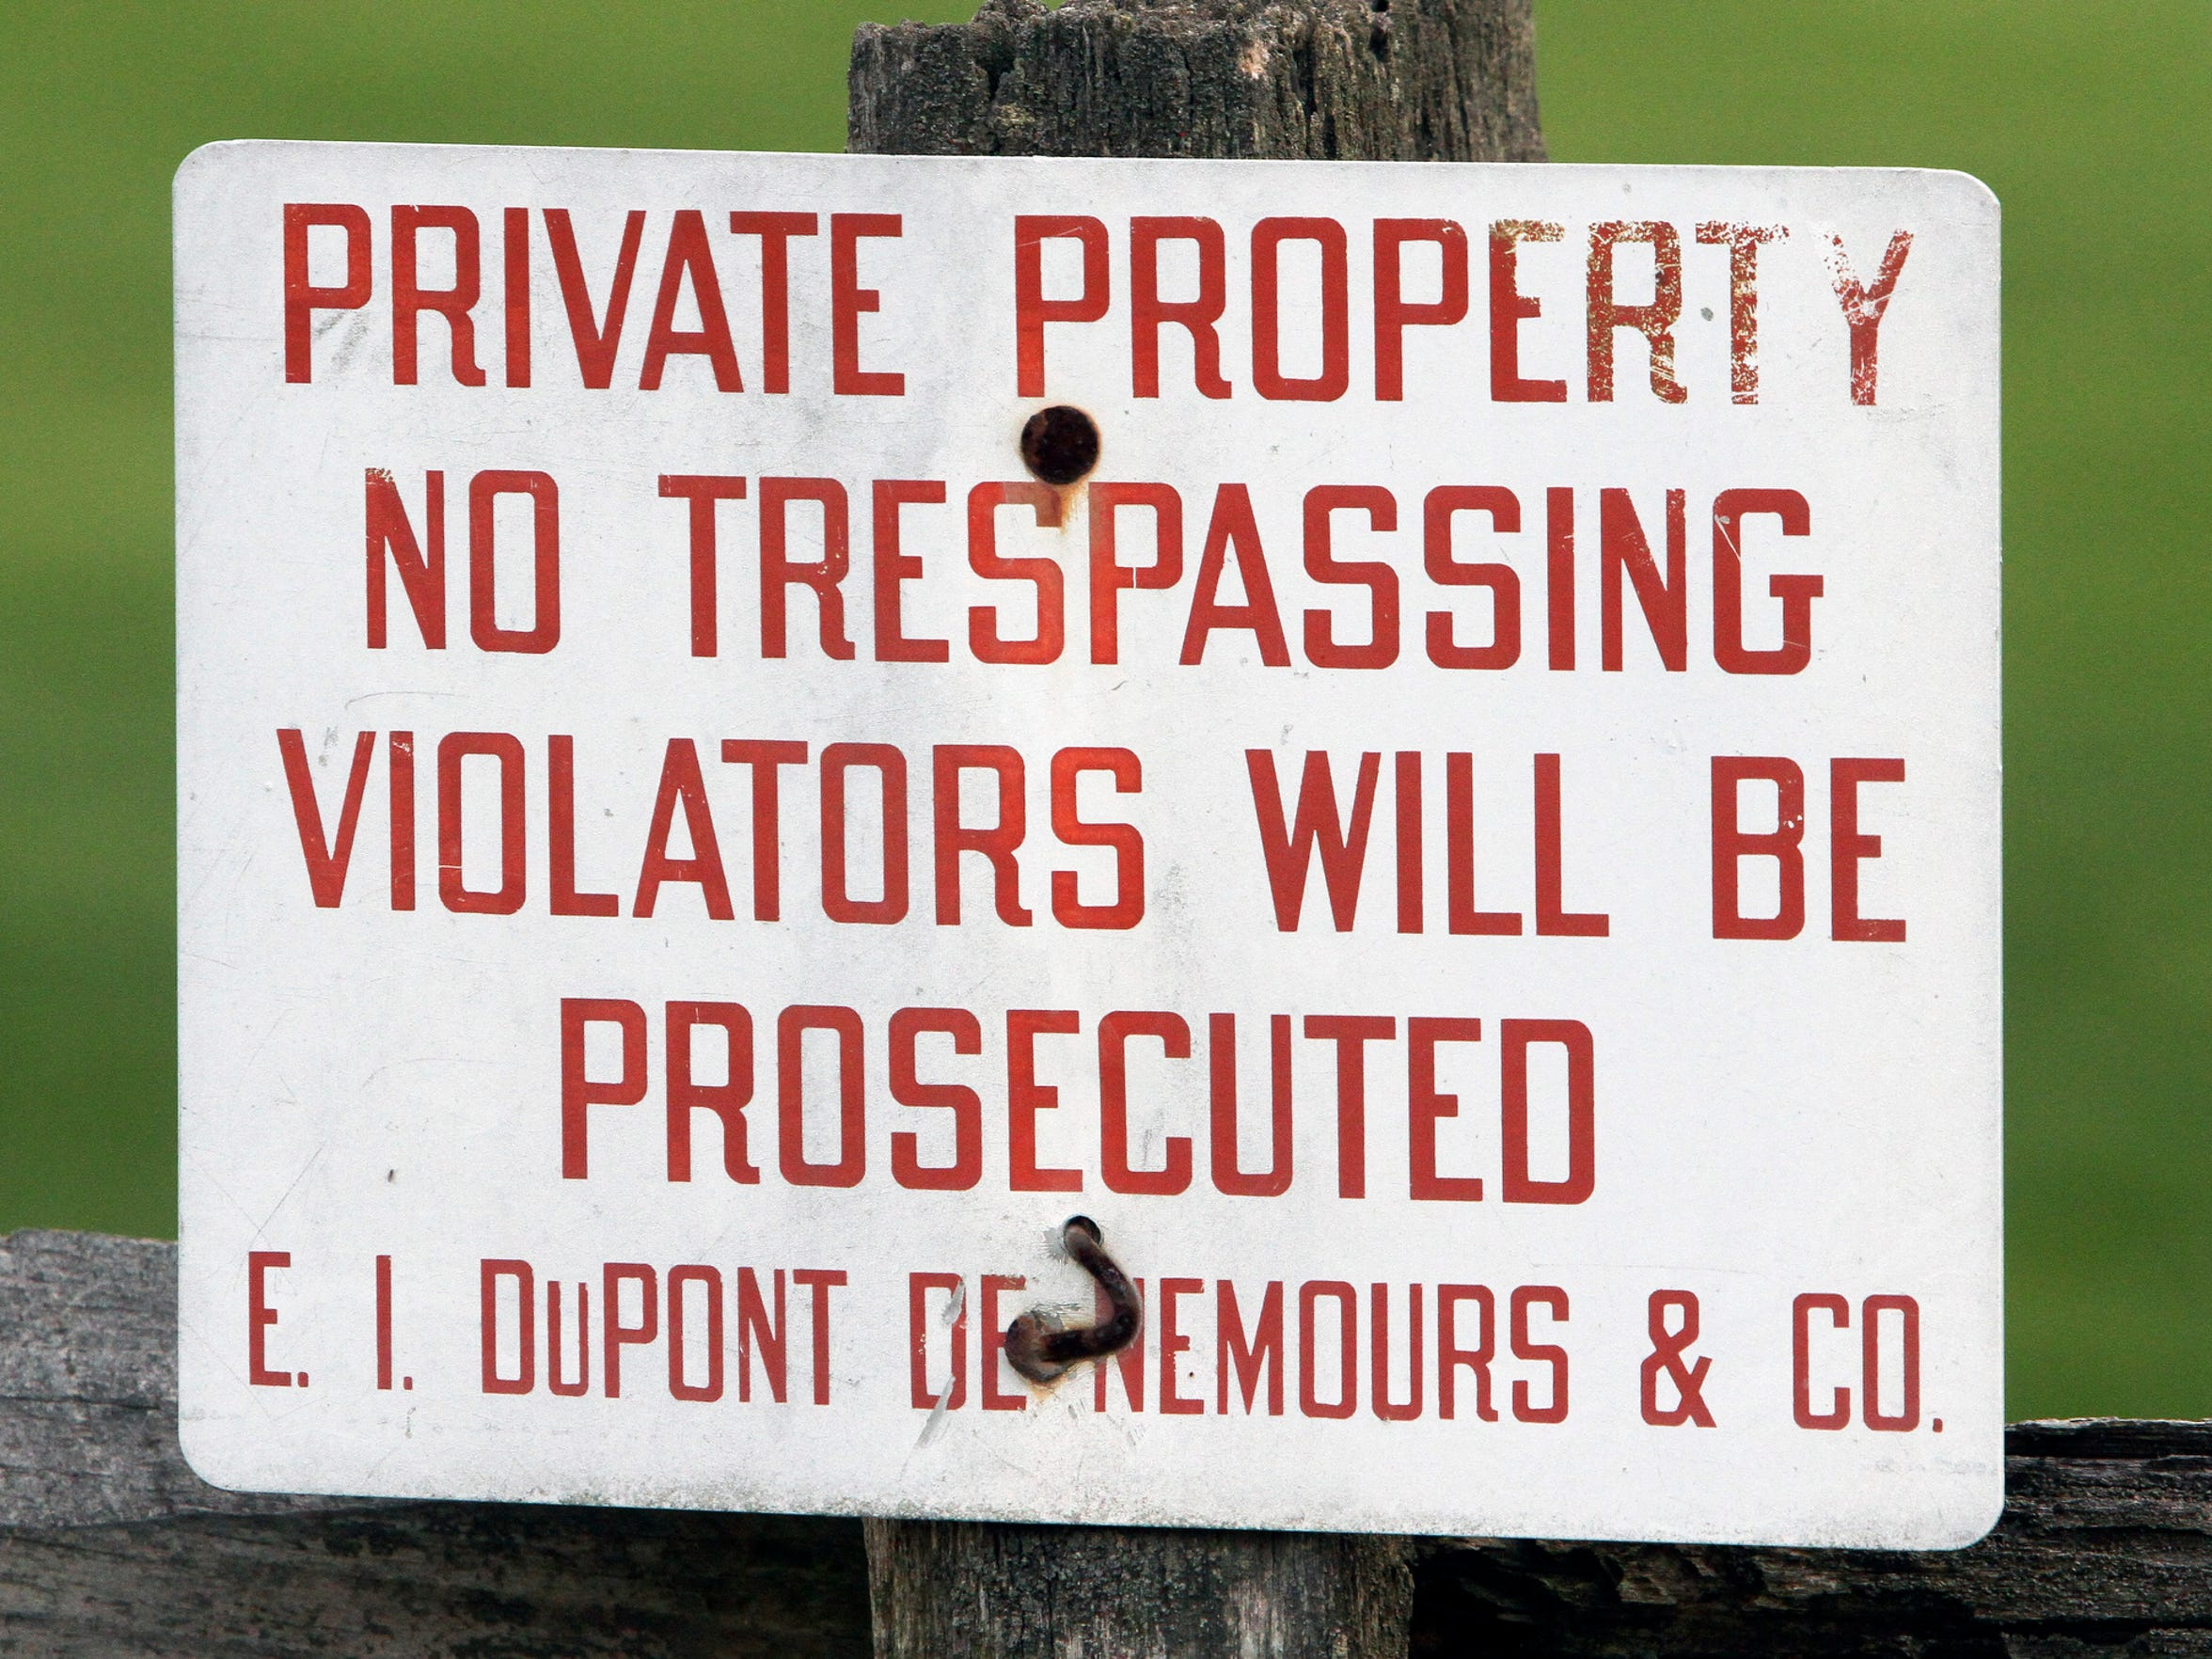 A sign at DuPont Country Club references the DuPont